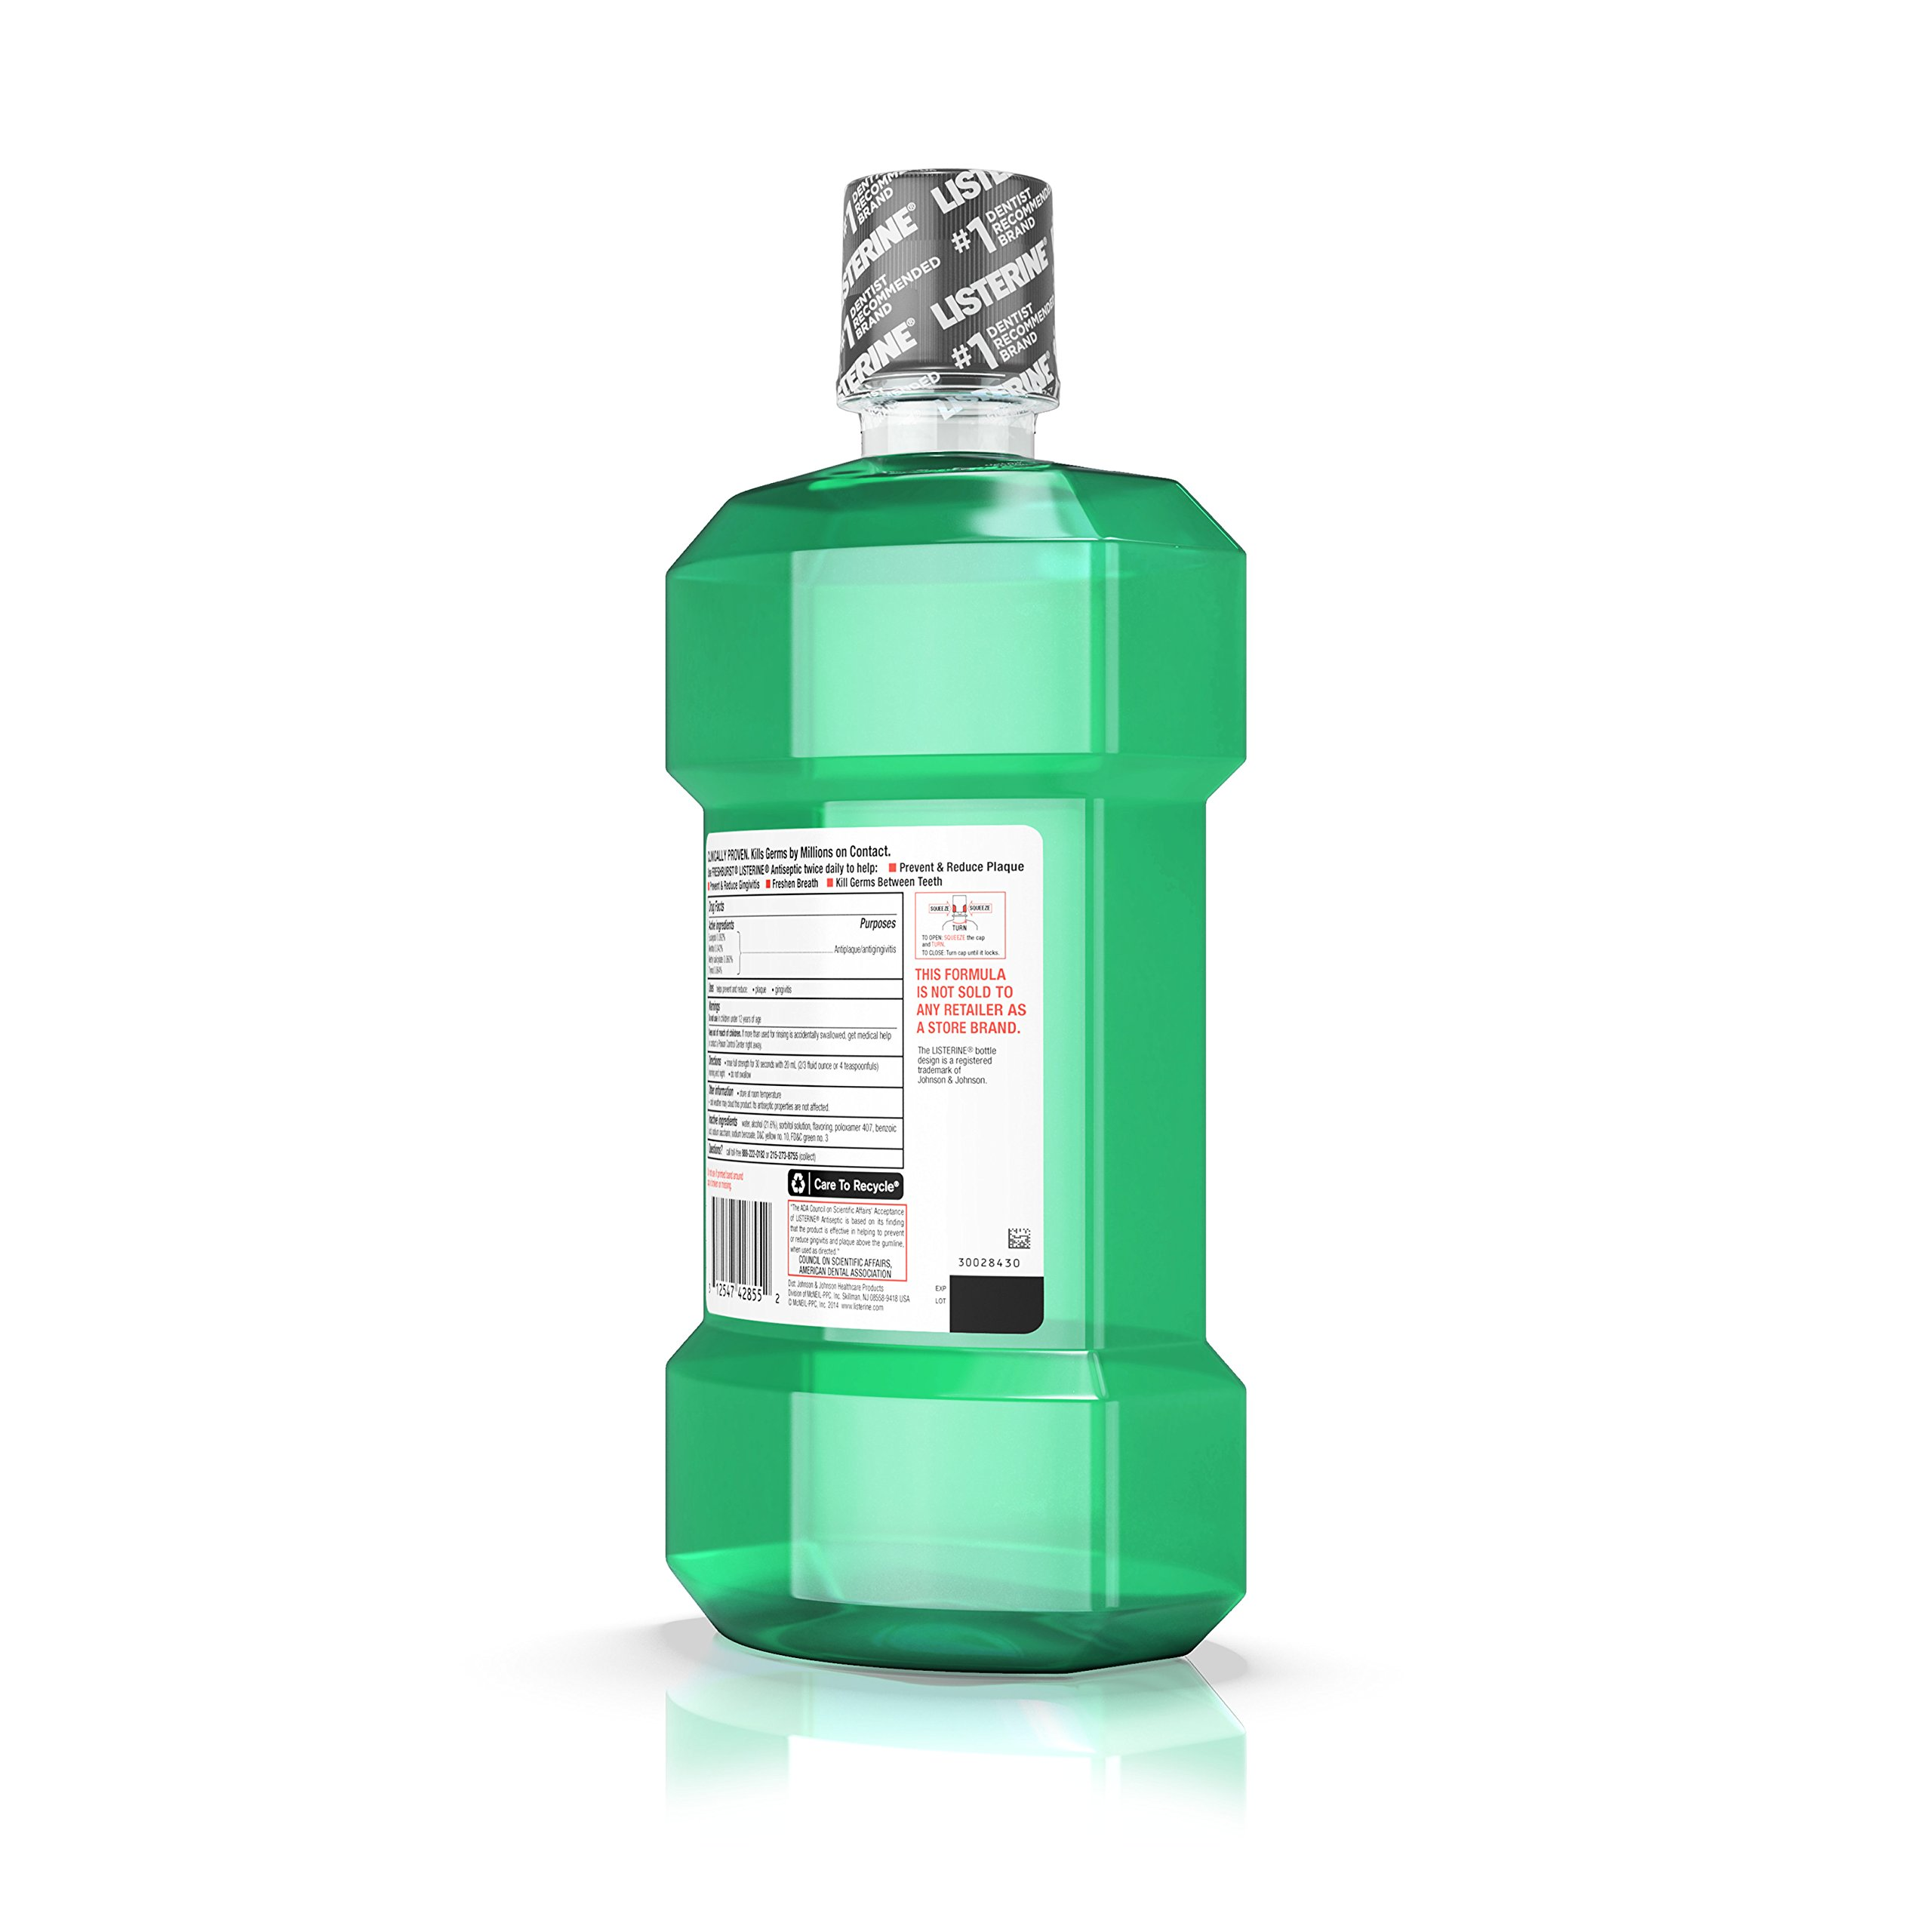 Listerine Freshburst Antiseptic Mouthwash For Bad Breath, 1.5 L, (Pack of 6) by Listerine (Image #7)